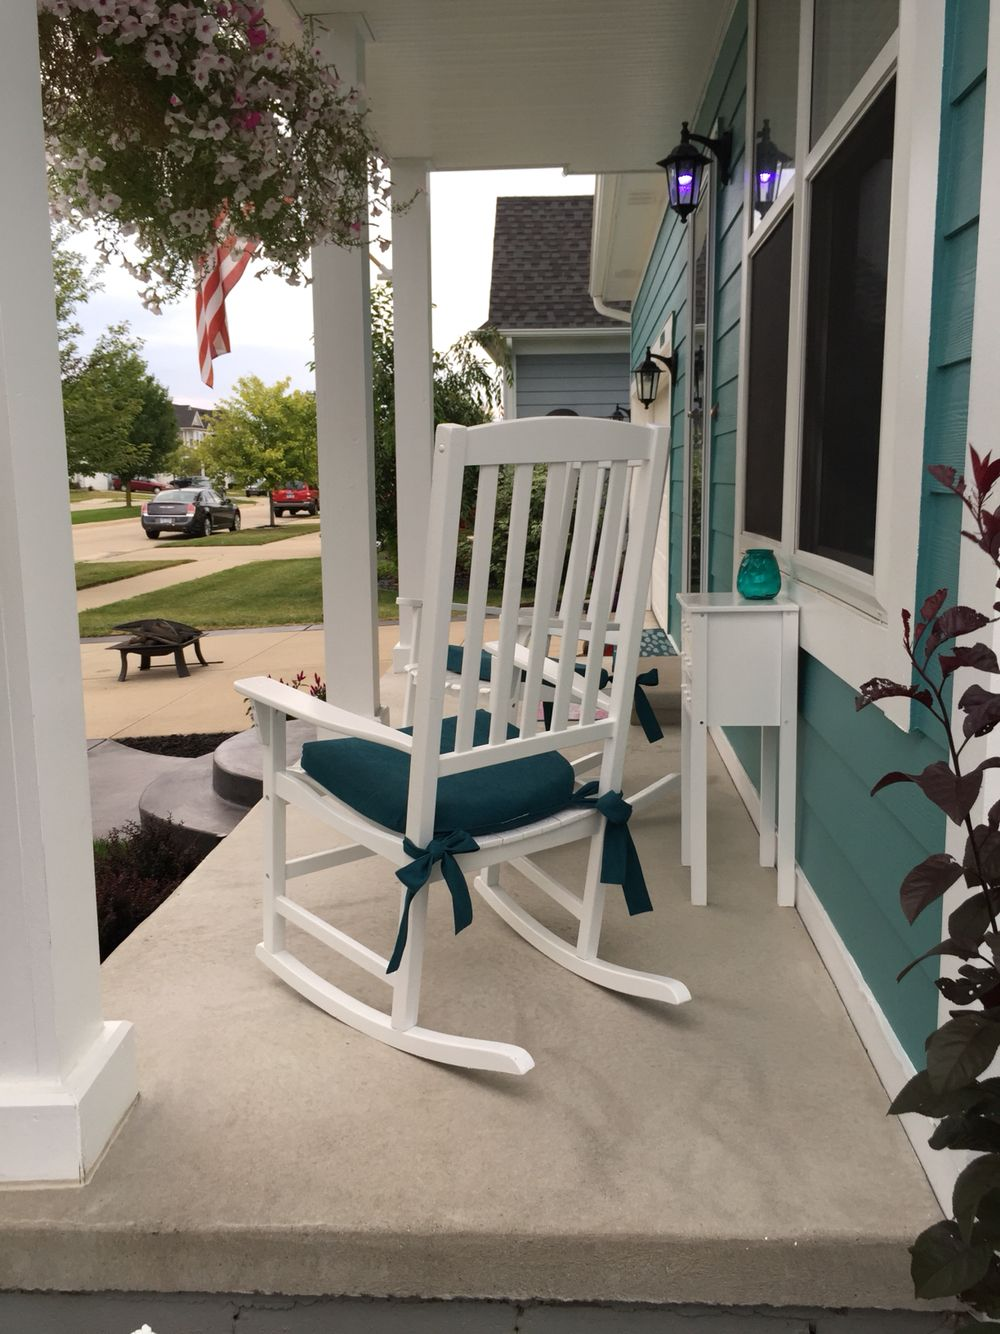 Refinished White Front Porch Rocking Chairs With Teal Cushions With Bow Ties